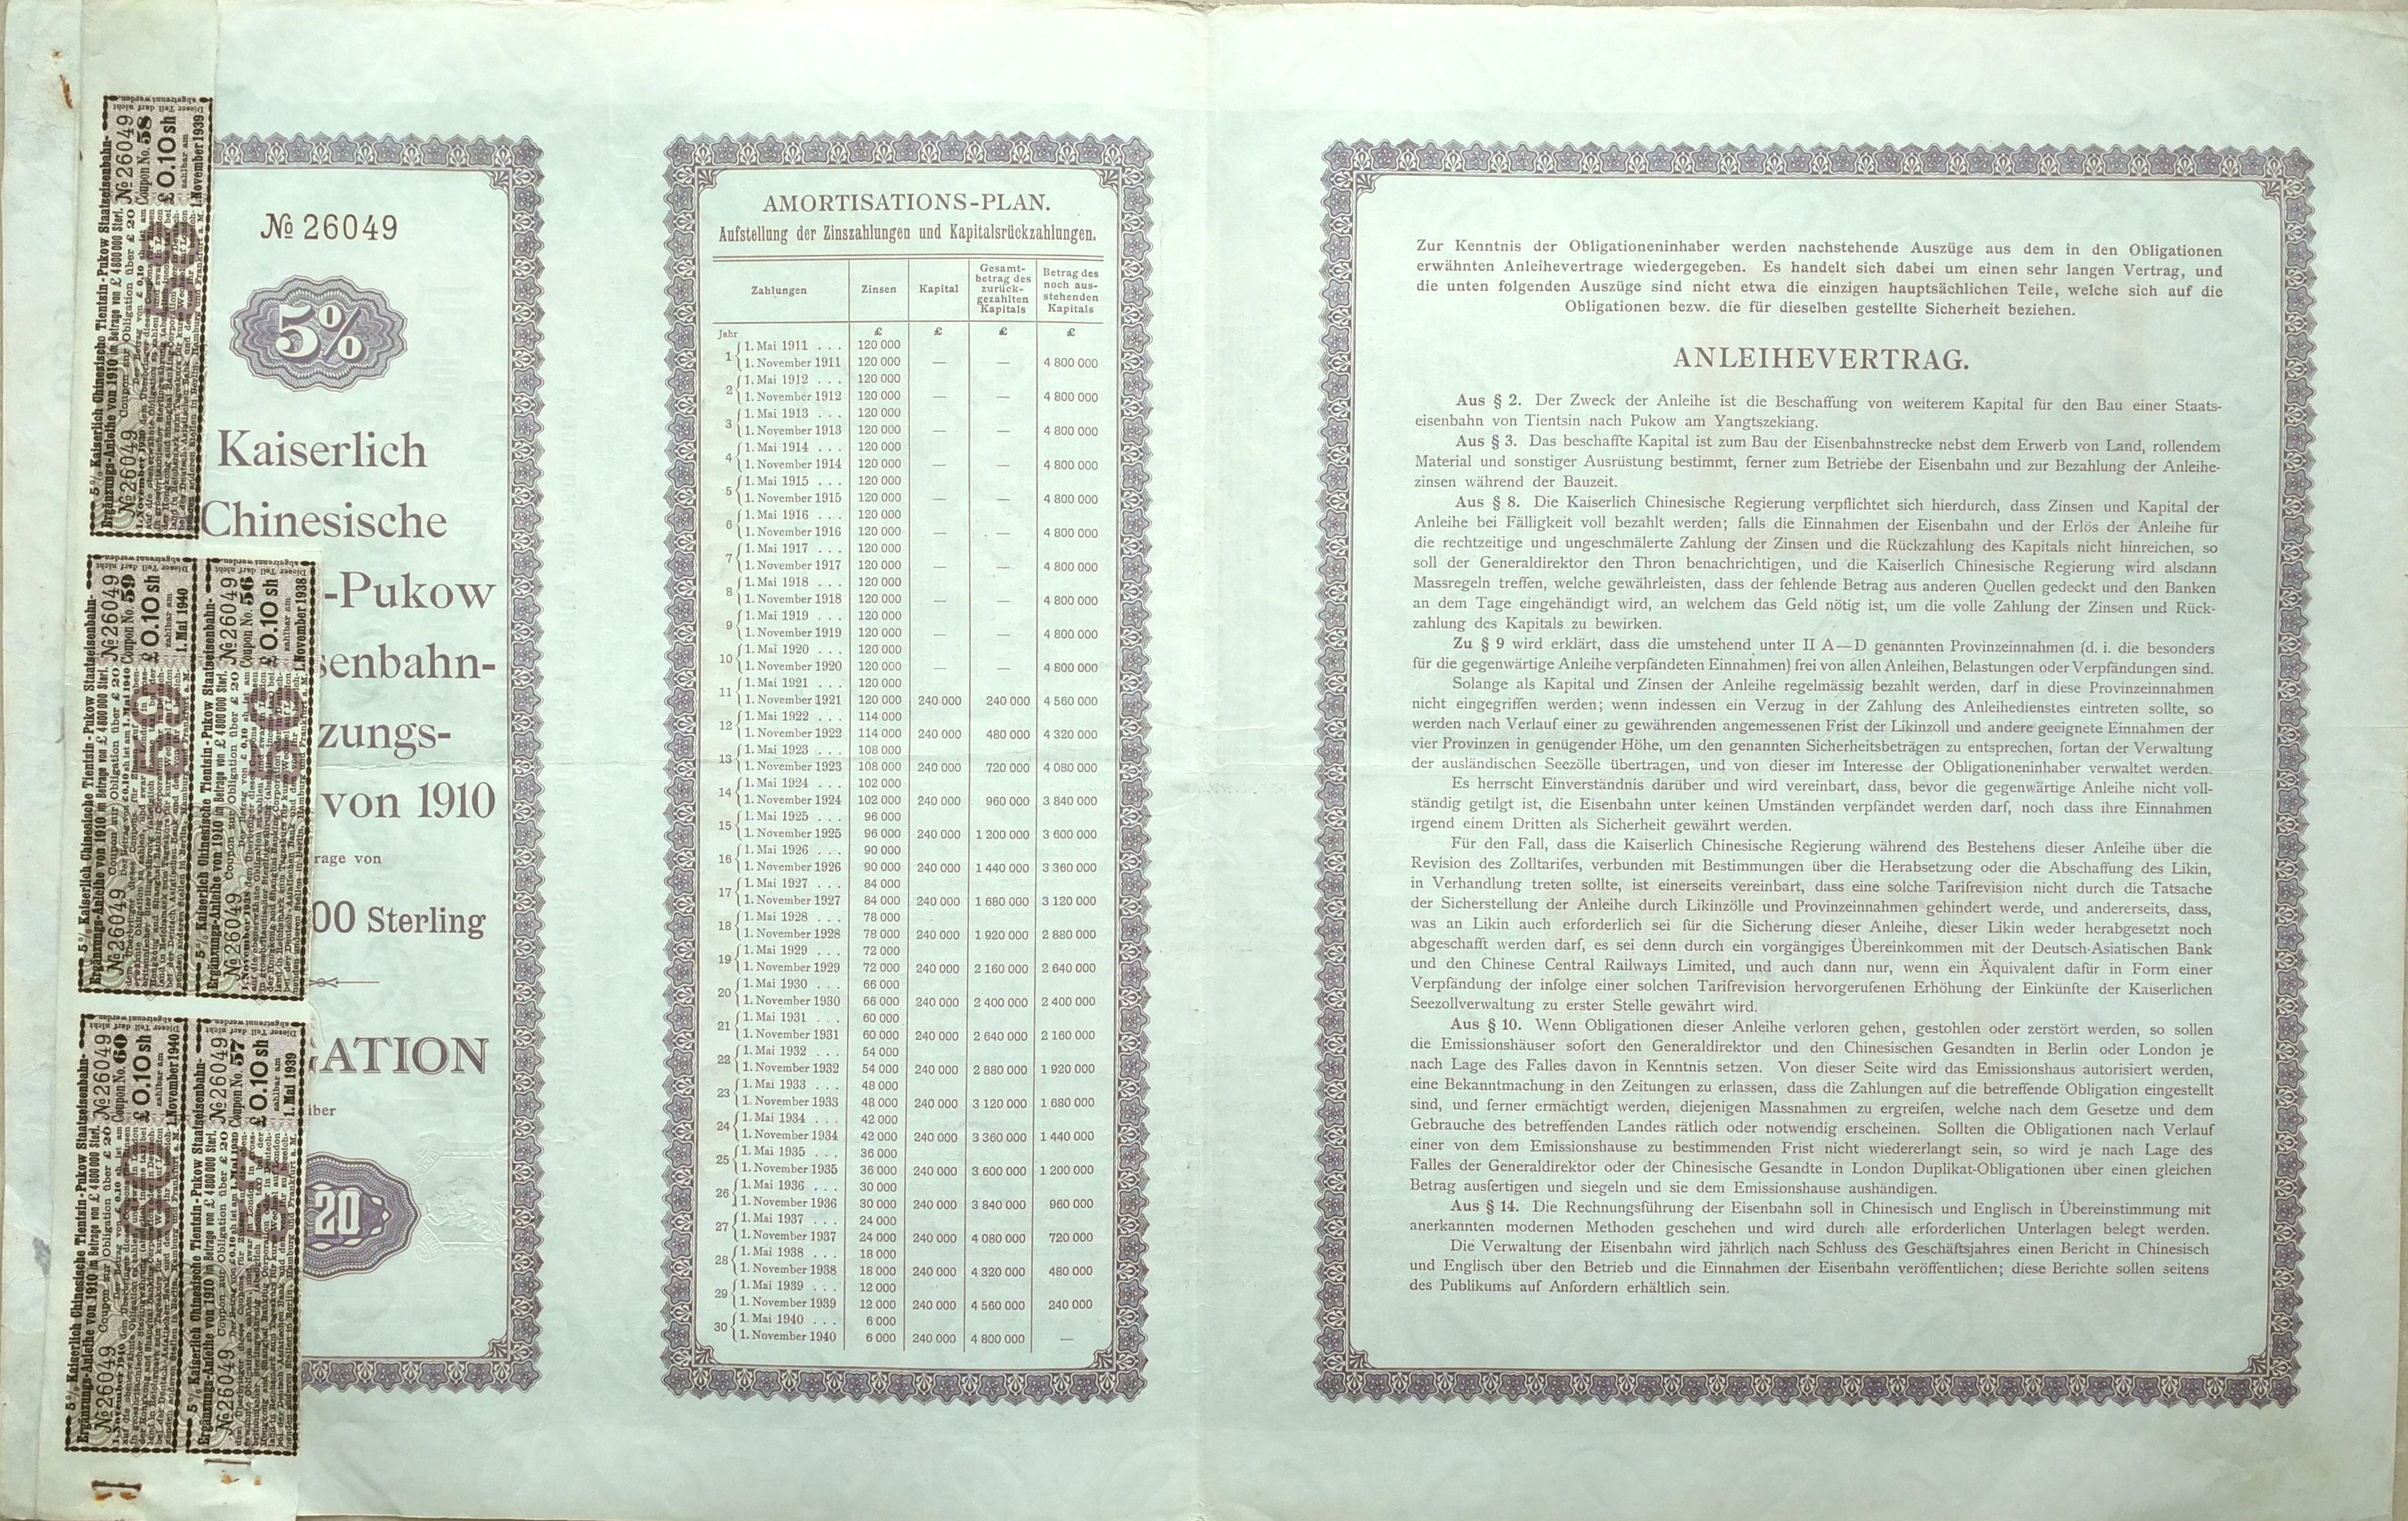 B9050, China 5% Tientsin-Pukow Railway Supplementary Loan, 20 Pounds Bond 1910 - Click Image to Close